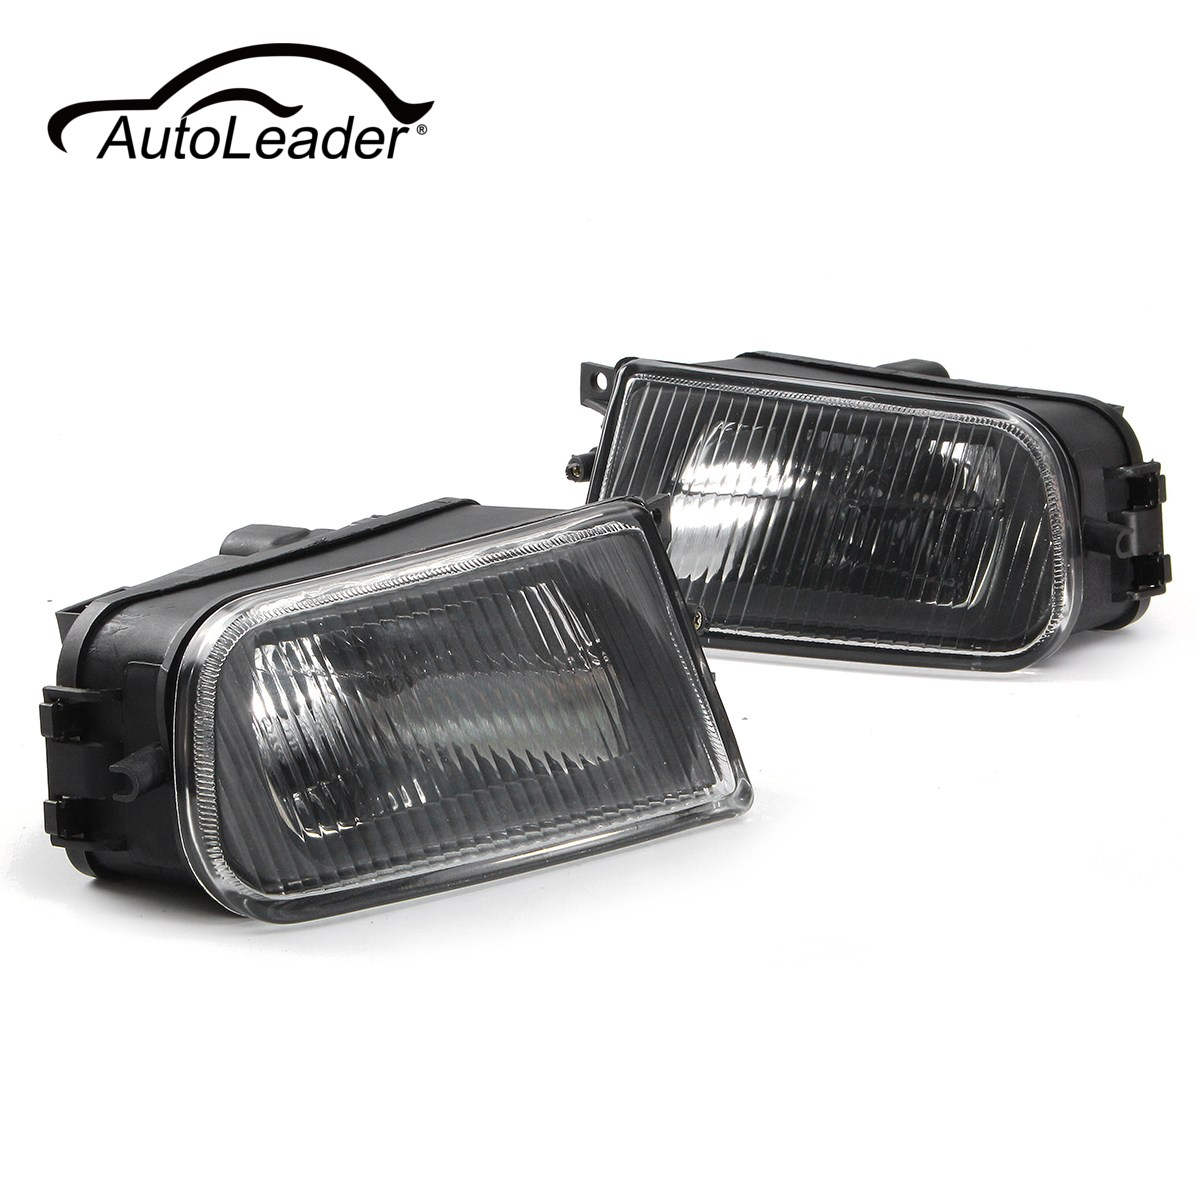 AutoLeader 1 Pair Left/Right Black Fog Lights Bumper Lamp Housing for BMW E39 5-Series 97-00/ Z3 97-01 63178360575 63178381977